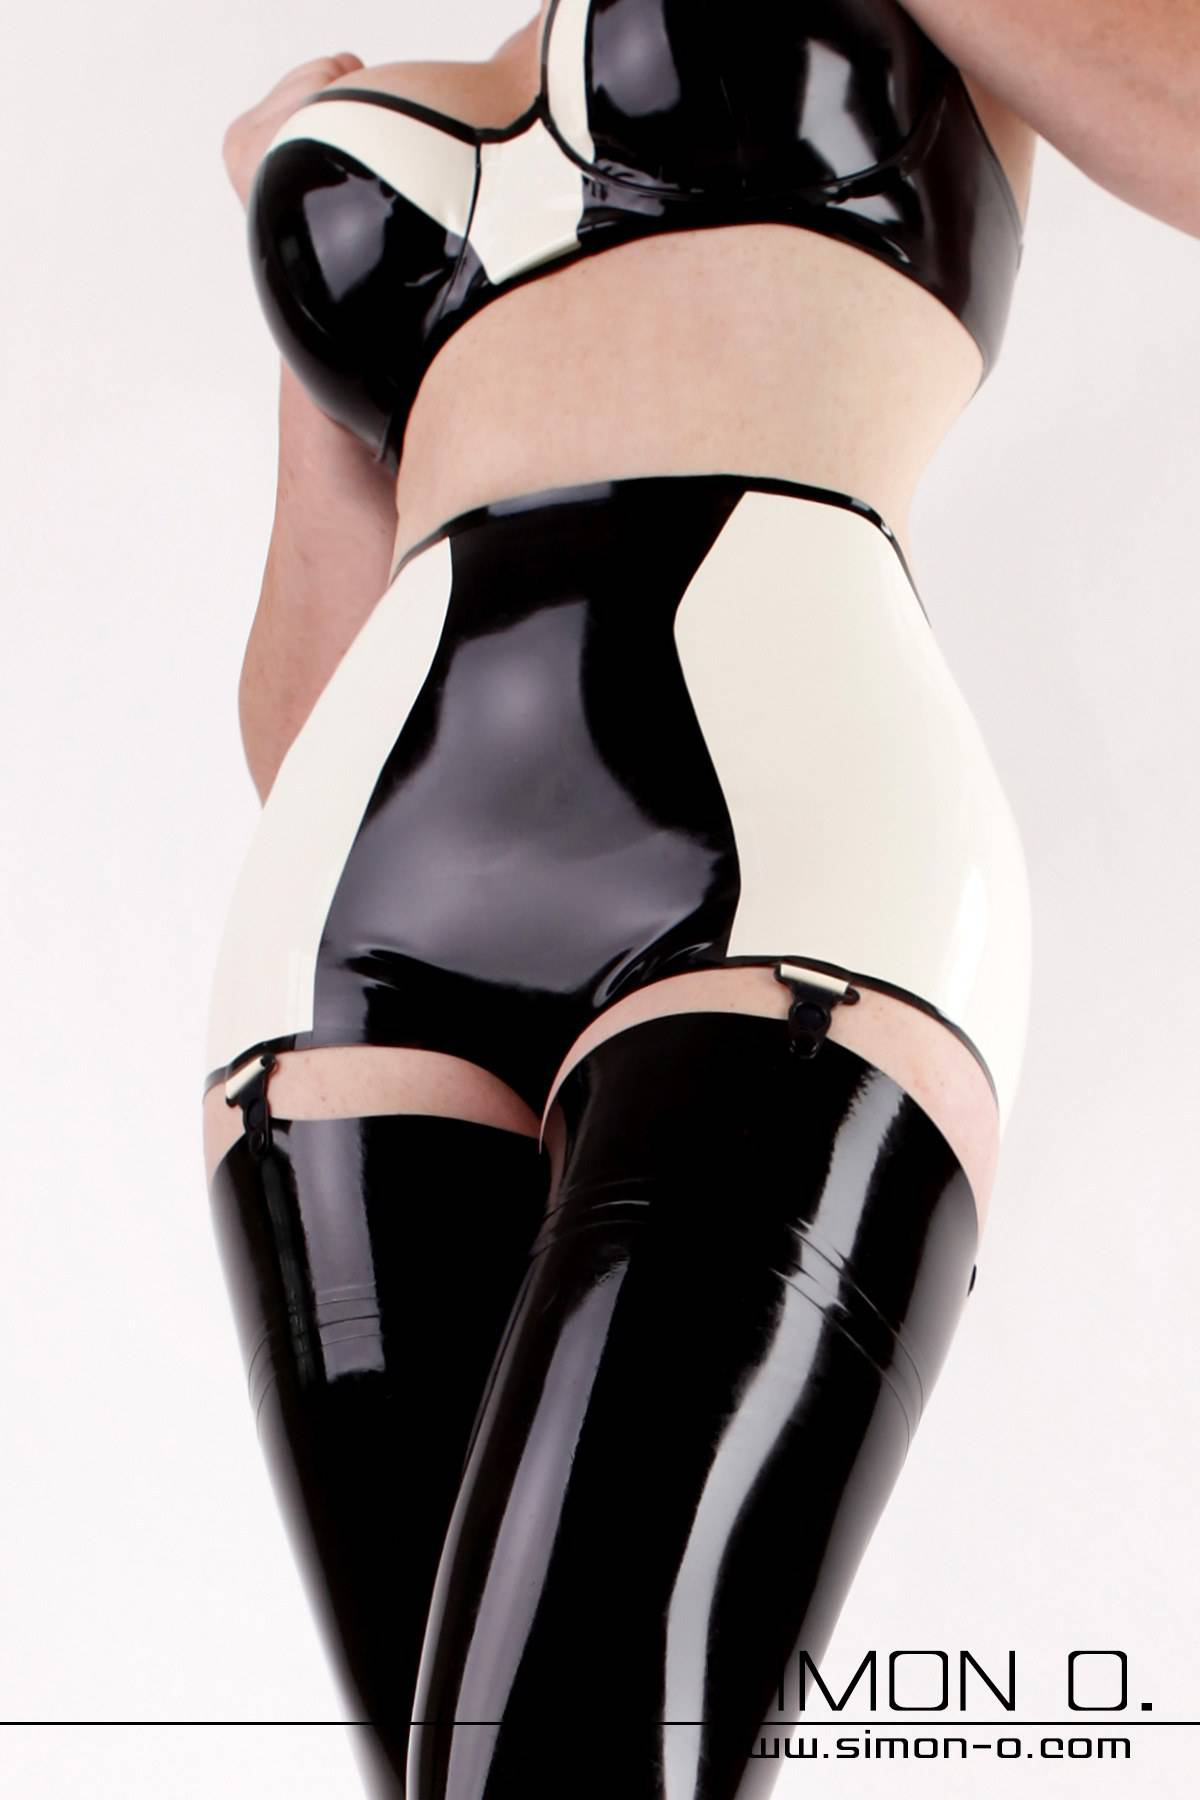 Black and white latex panties with high waist and 4 suspenders.